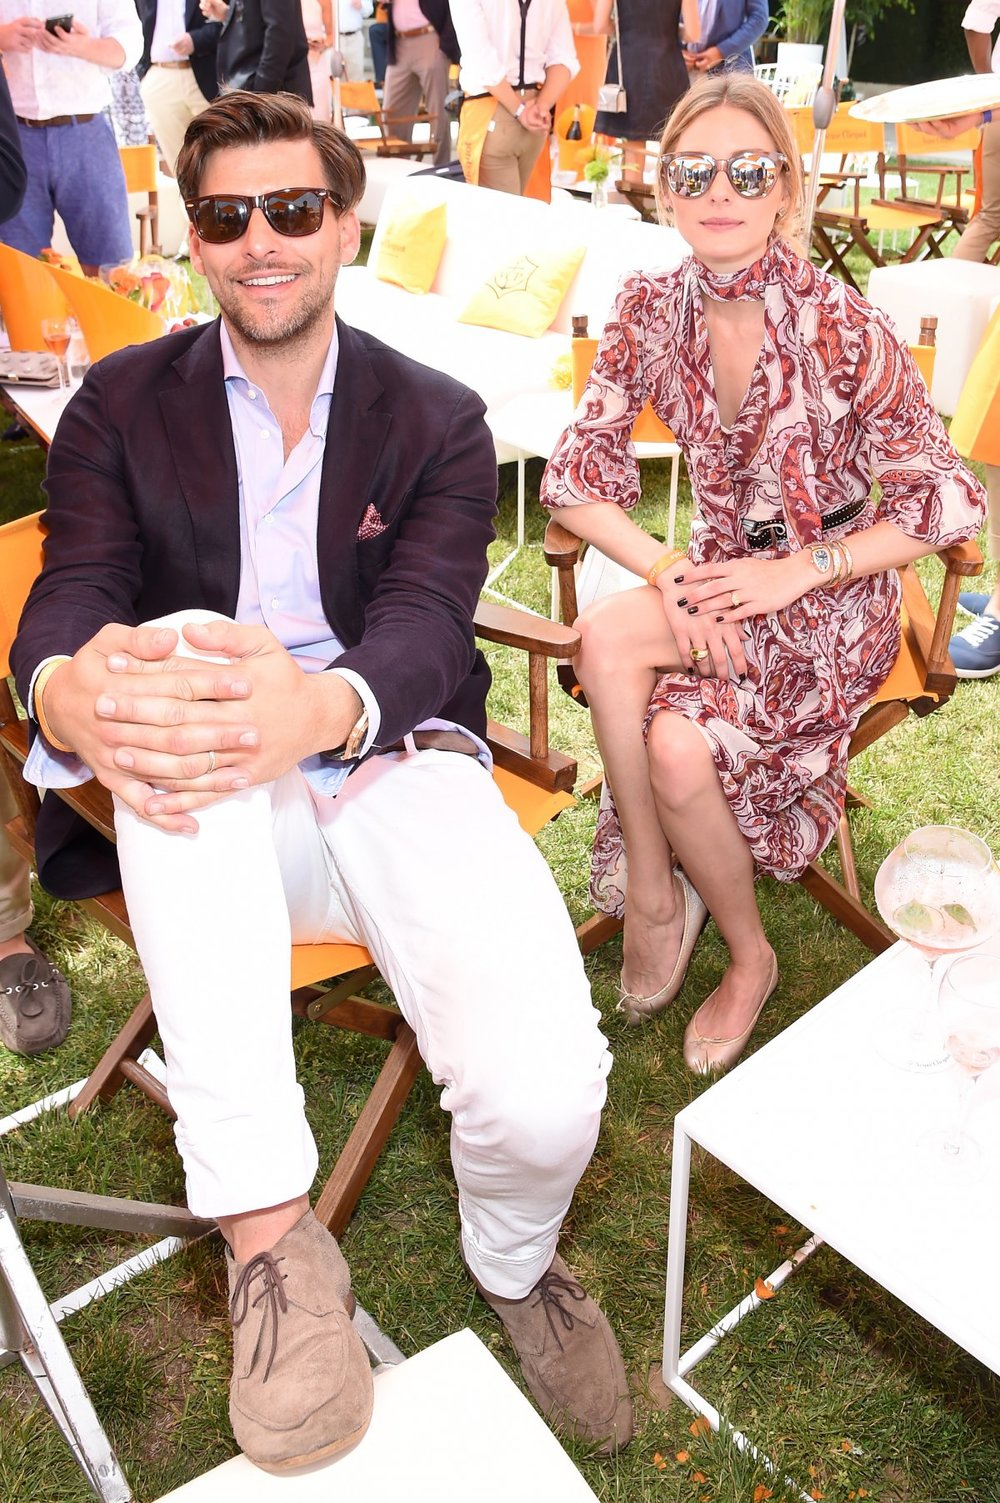 olivia-palermo-pictured-here-with-husband-johannes-huebl-dressed-the-part.jpg